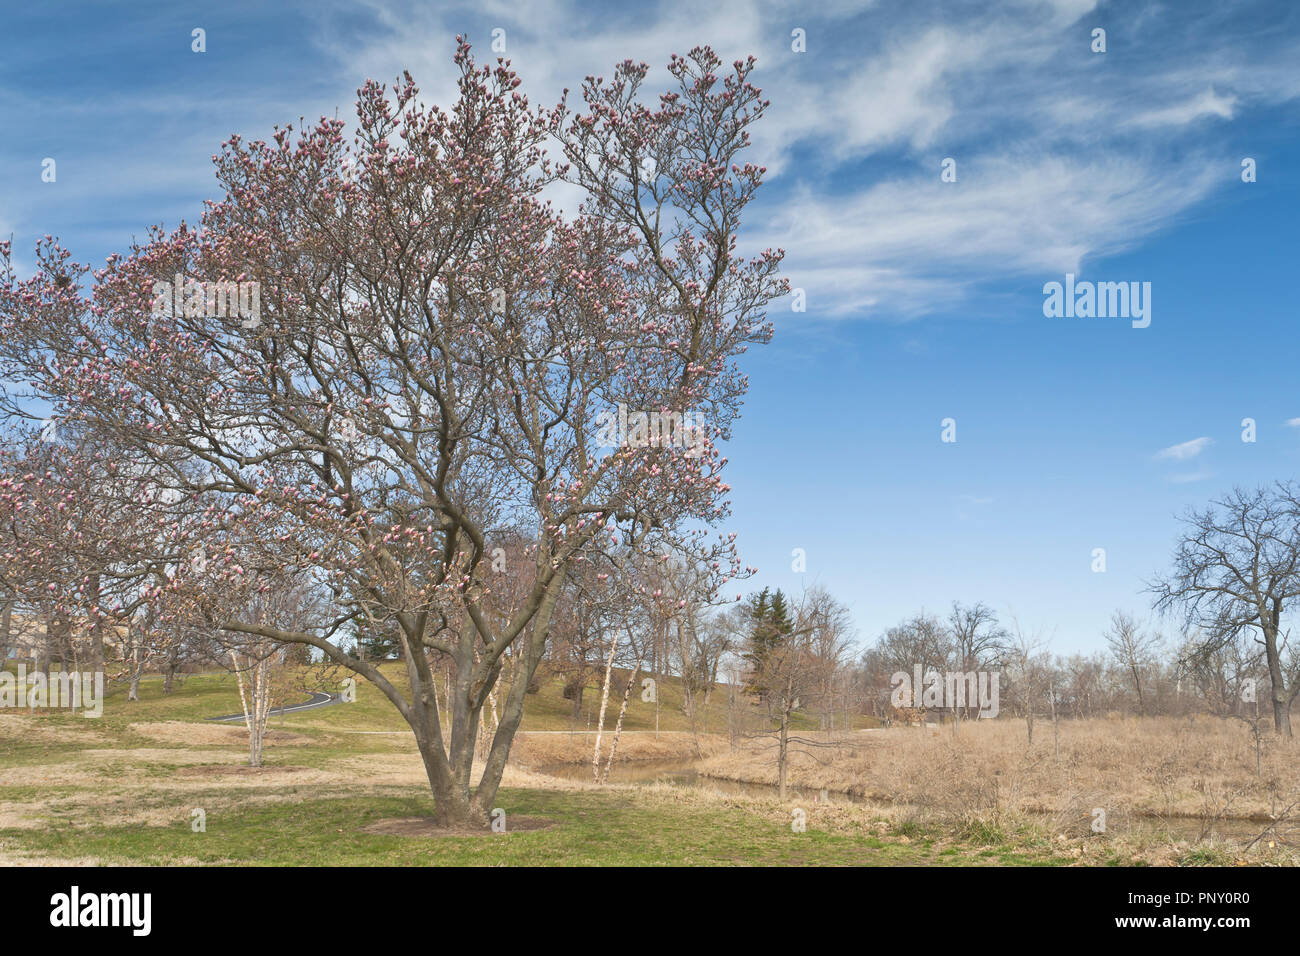 Pink buds of a saucer magnolia stand out against a backdrop of blue sky and wispy white cirrus clouds on a spring day at St. Louis Forest Park. - Stock Image